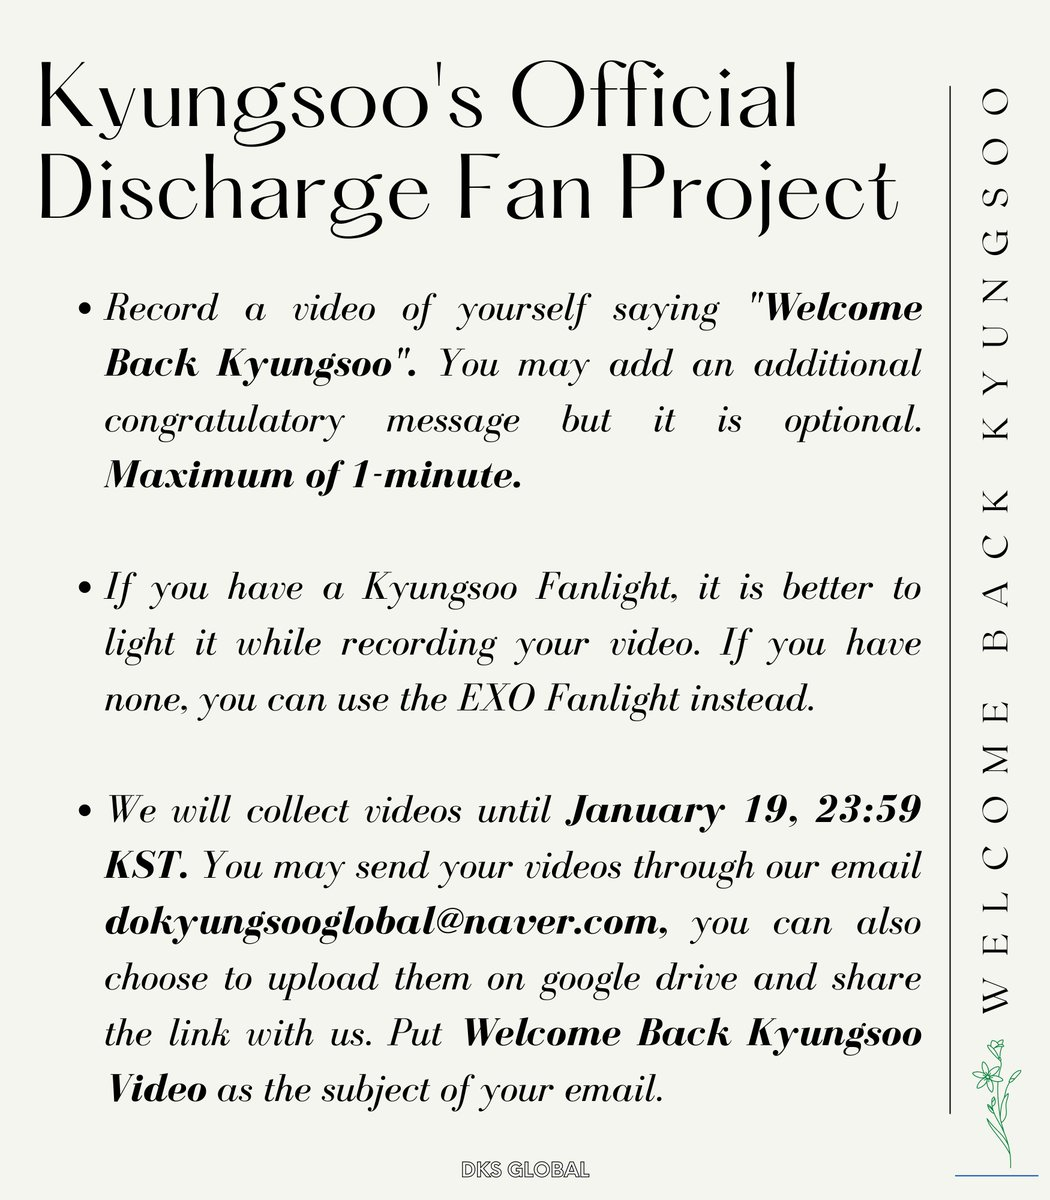 🥳#KYUNGSOOs Discharge Fan Project🥳 Your participation is much appreciated! Please read all the details on the poster. 여러분의 참여를 기대합니다. 포스터에 모든 세부사항을 읽어주세요. ✉️dokyungsooglobal@naver.com 📅January 19, 23:59 KST #디오 #도경수 #DO #EXO @weareoneEXO